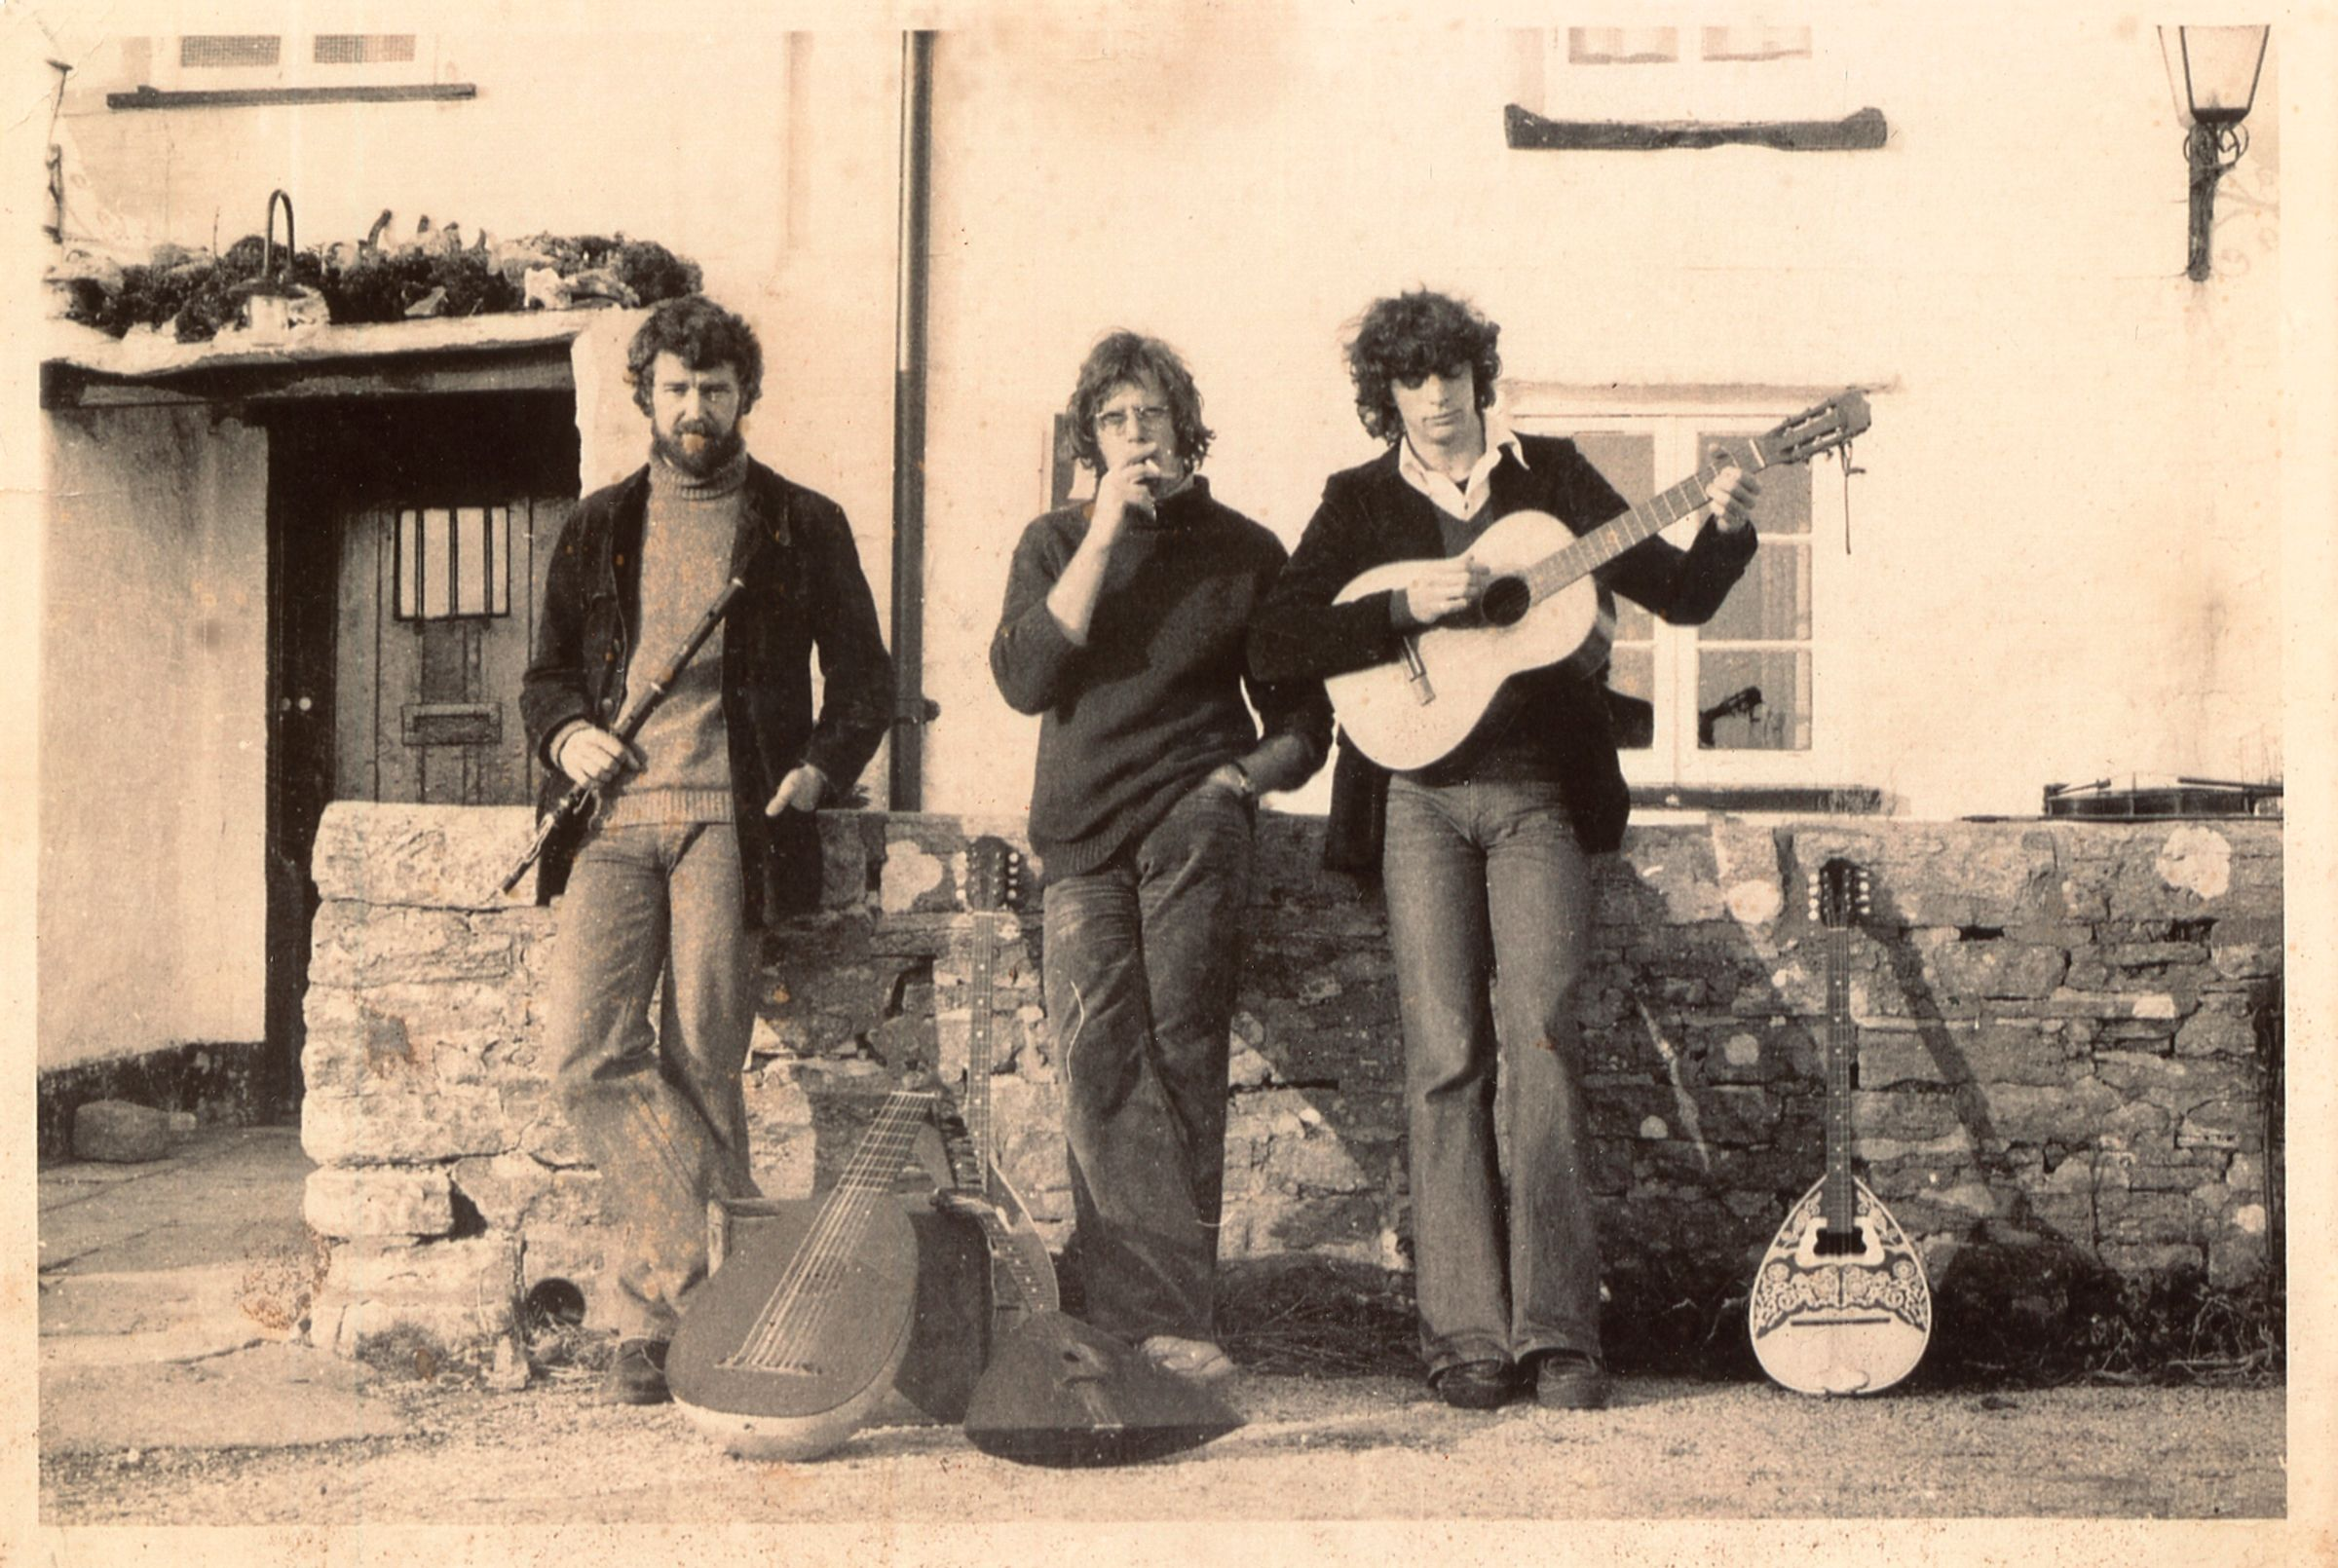 Jack Martin Rogers (left) with his fellow musicians